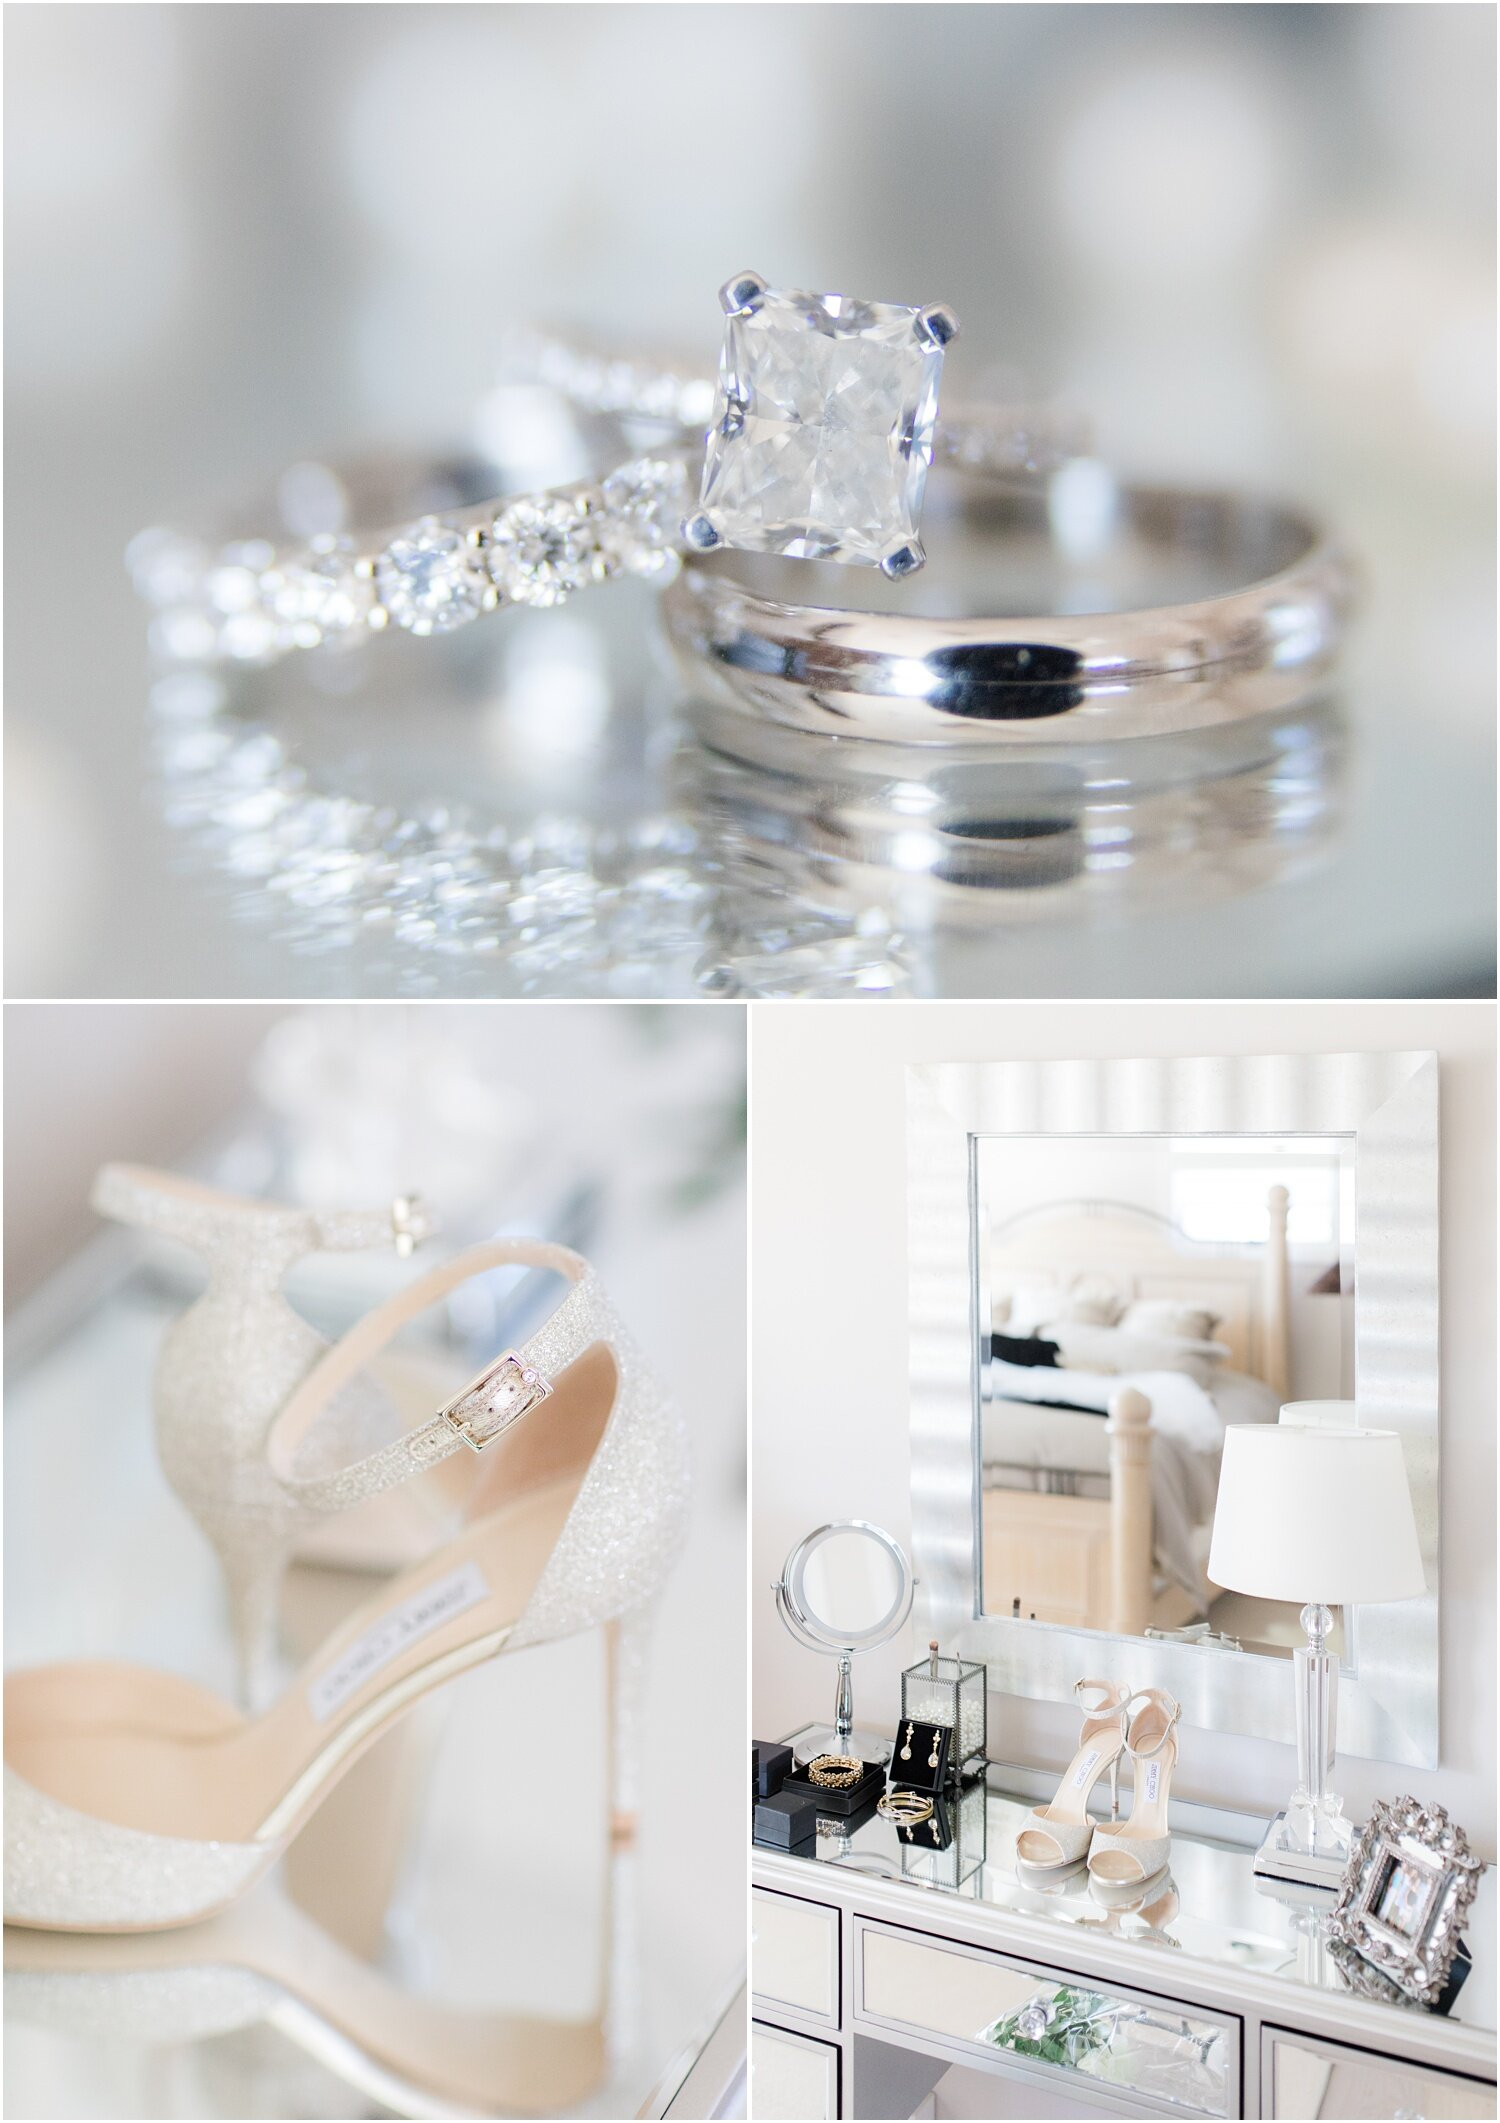 Brides shoes and vanity on her wedding day.